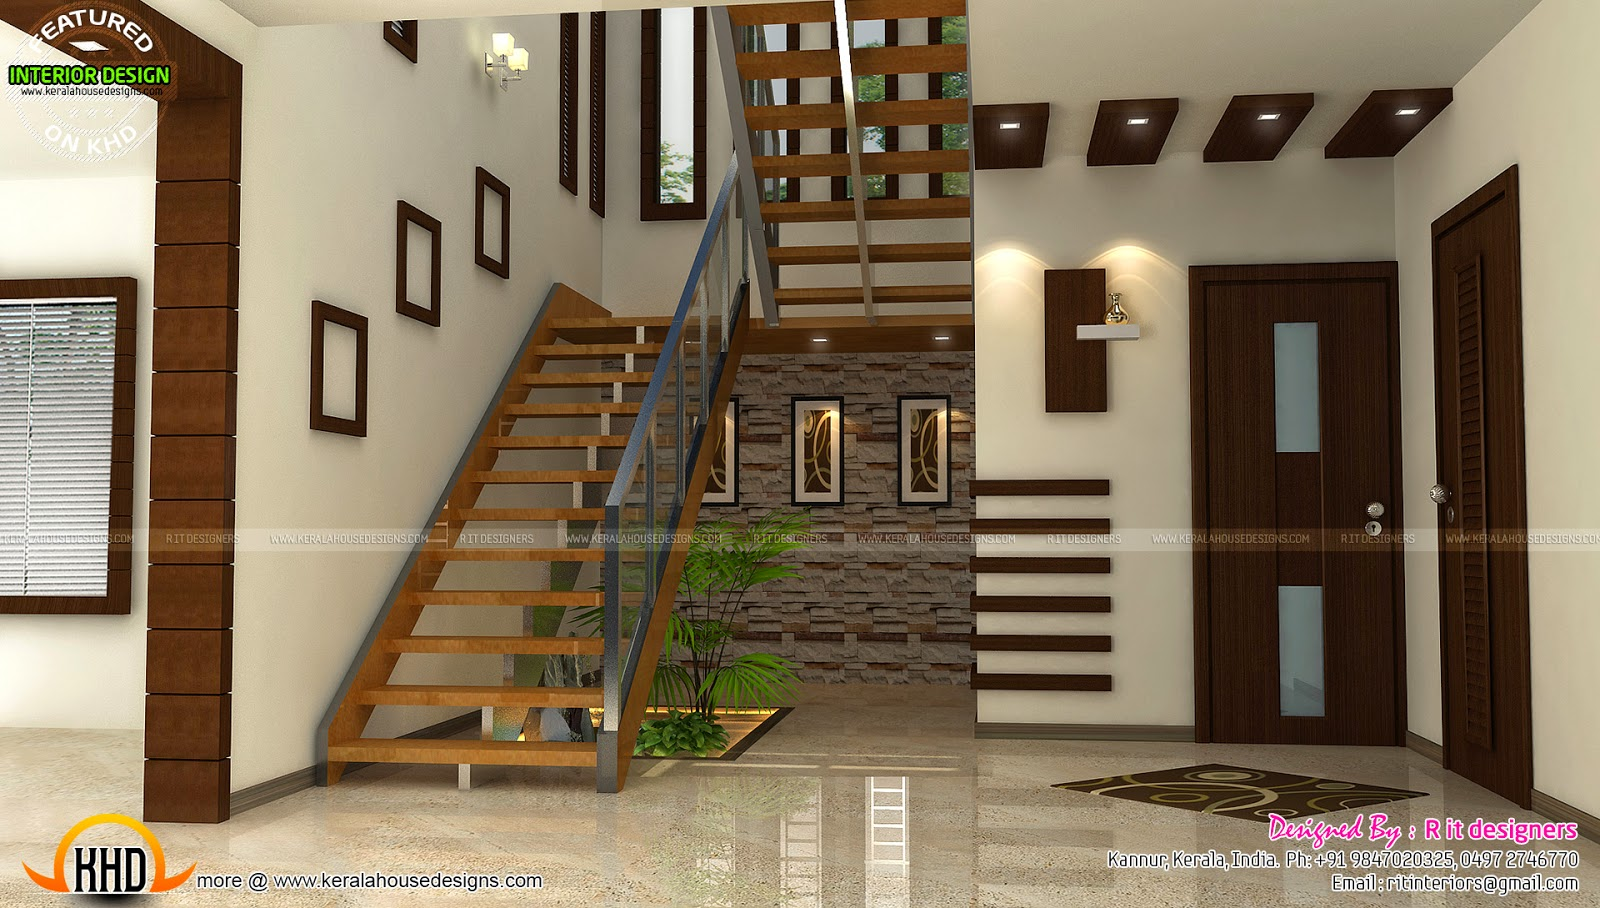 Staircase bedroom dining interiors kerala home design House design inside